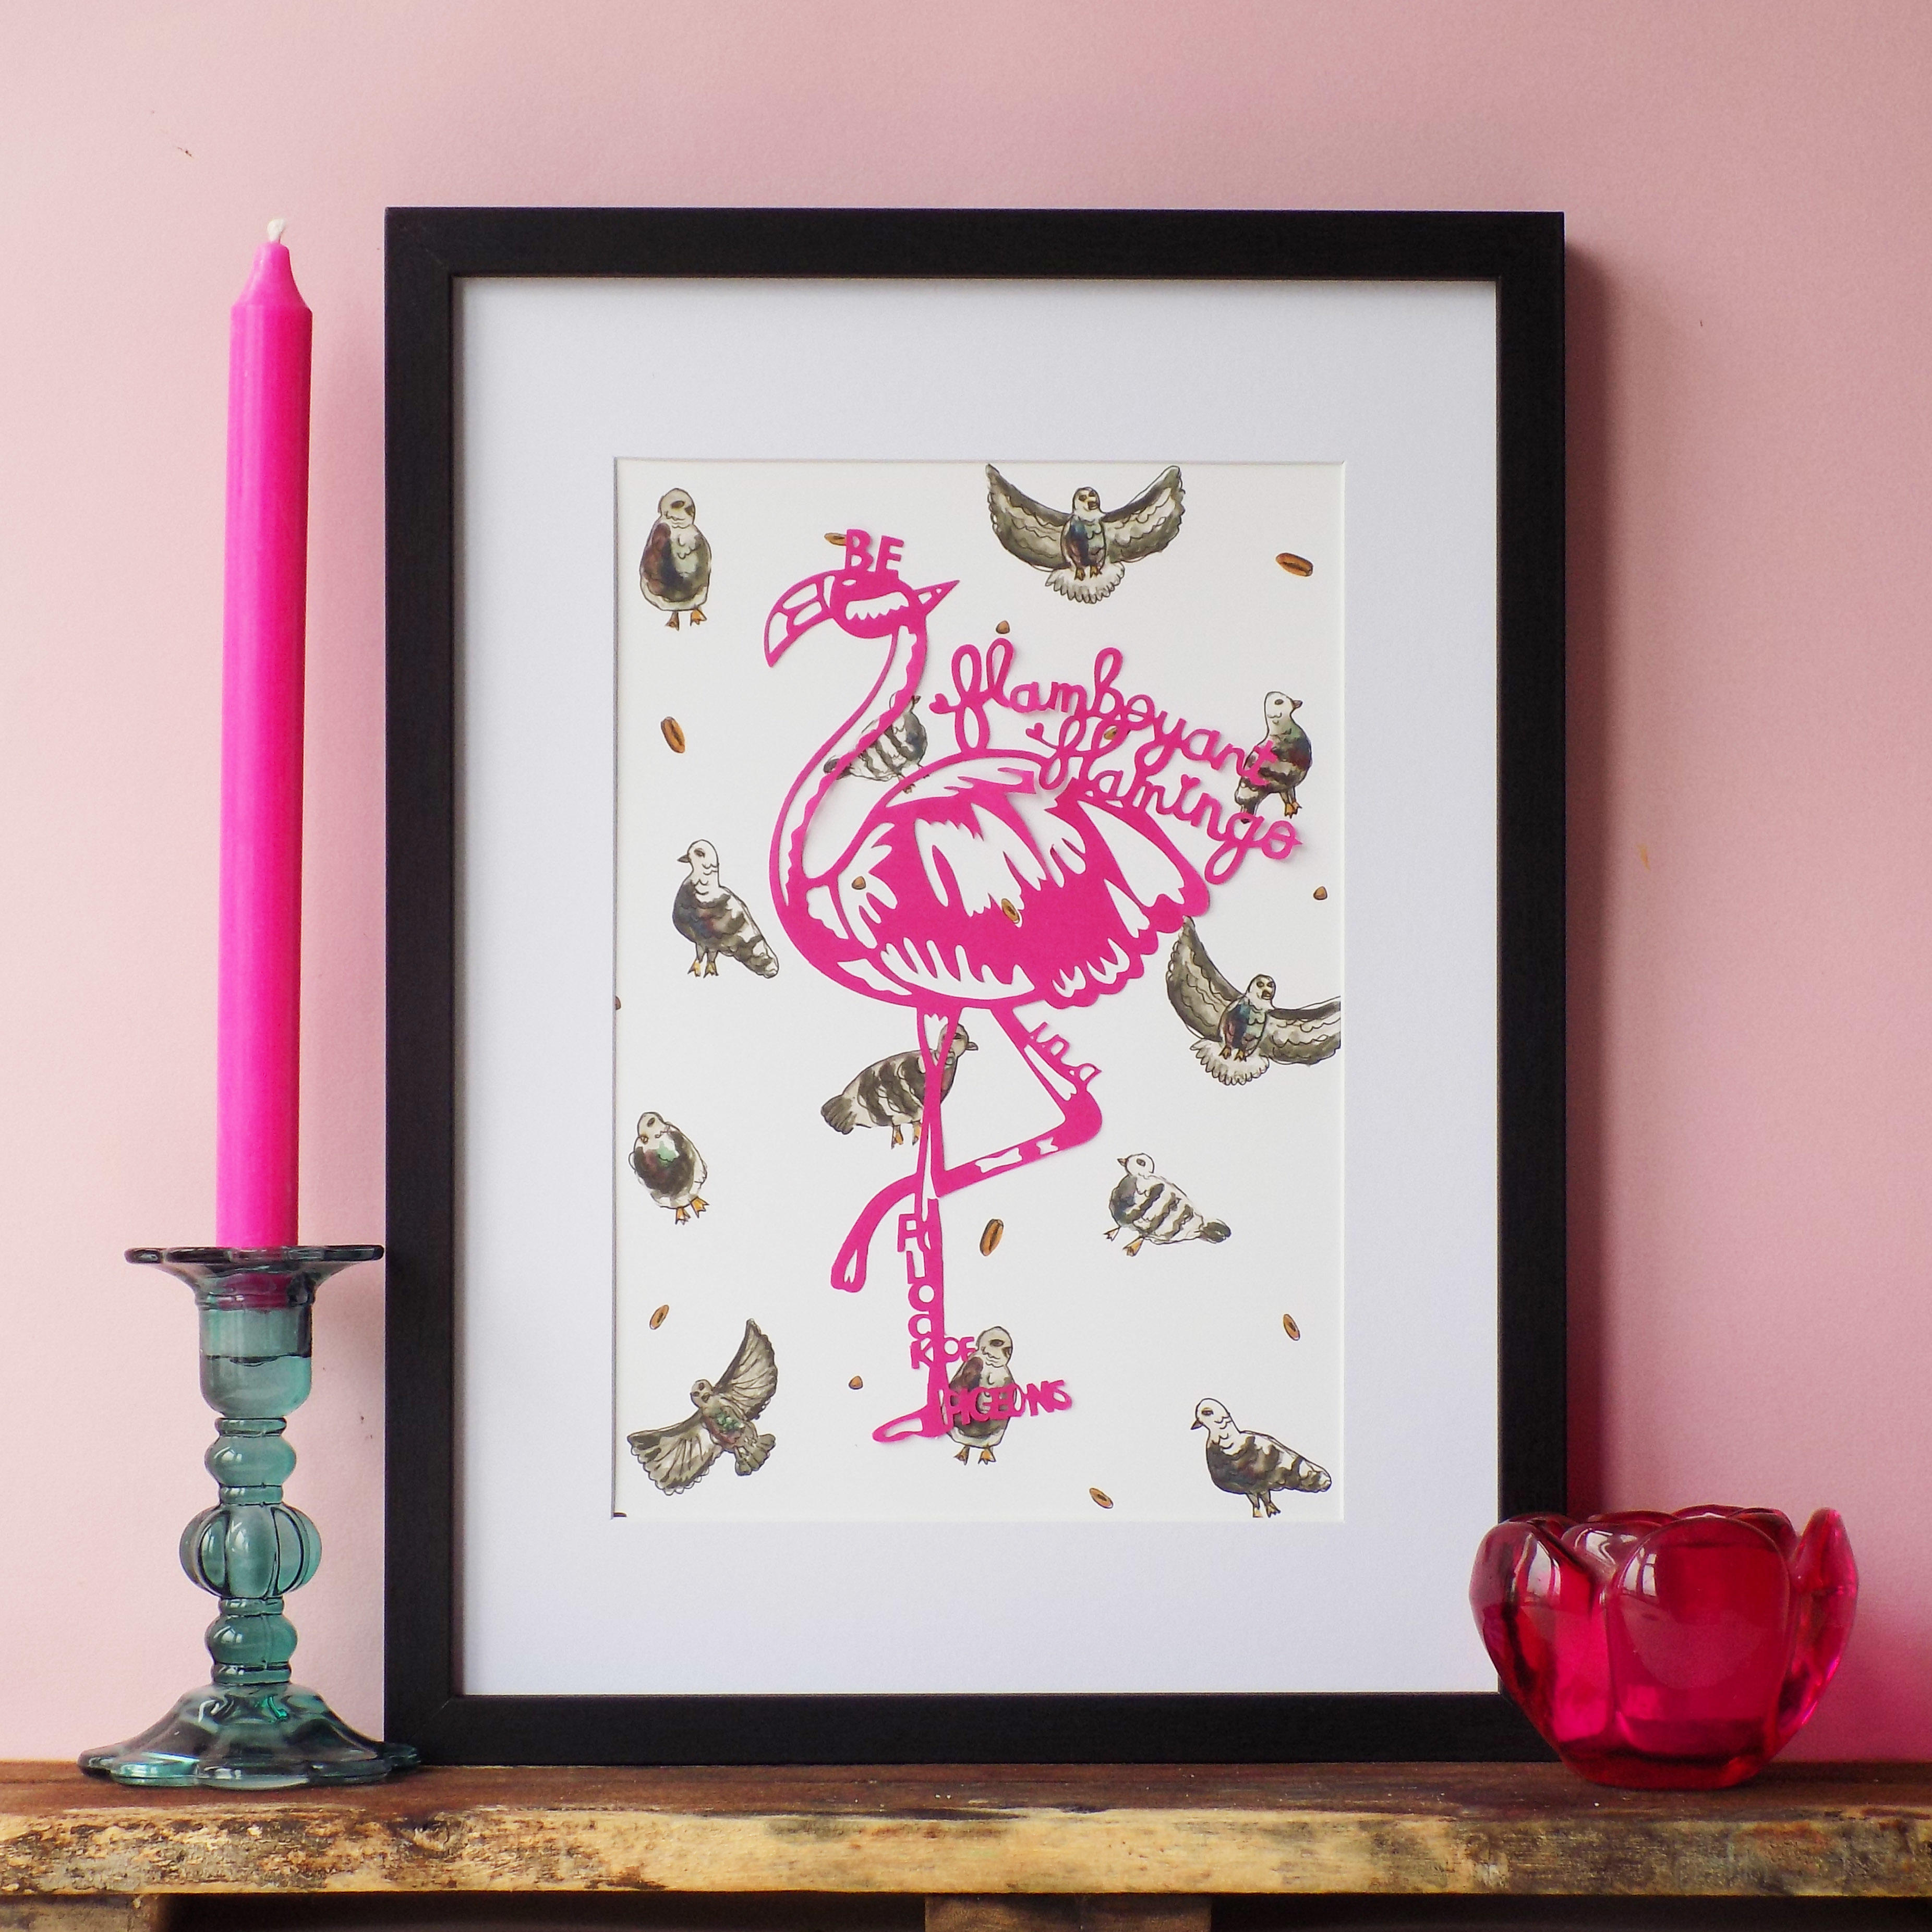 A paper cut flamingo overlaid on watercolour illustrations of pigeons